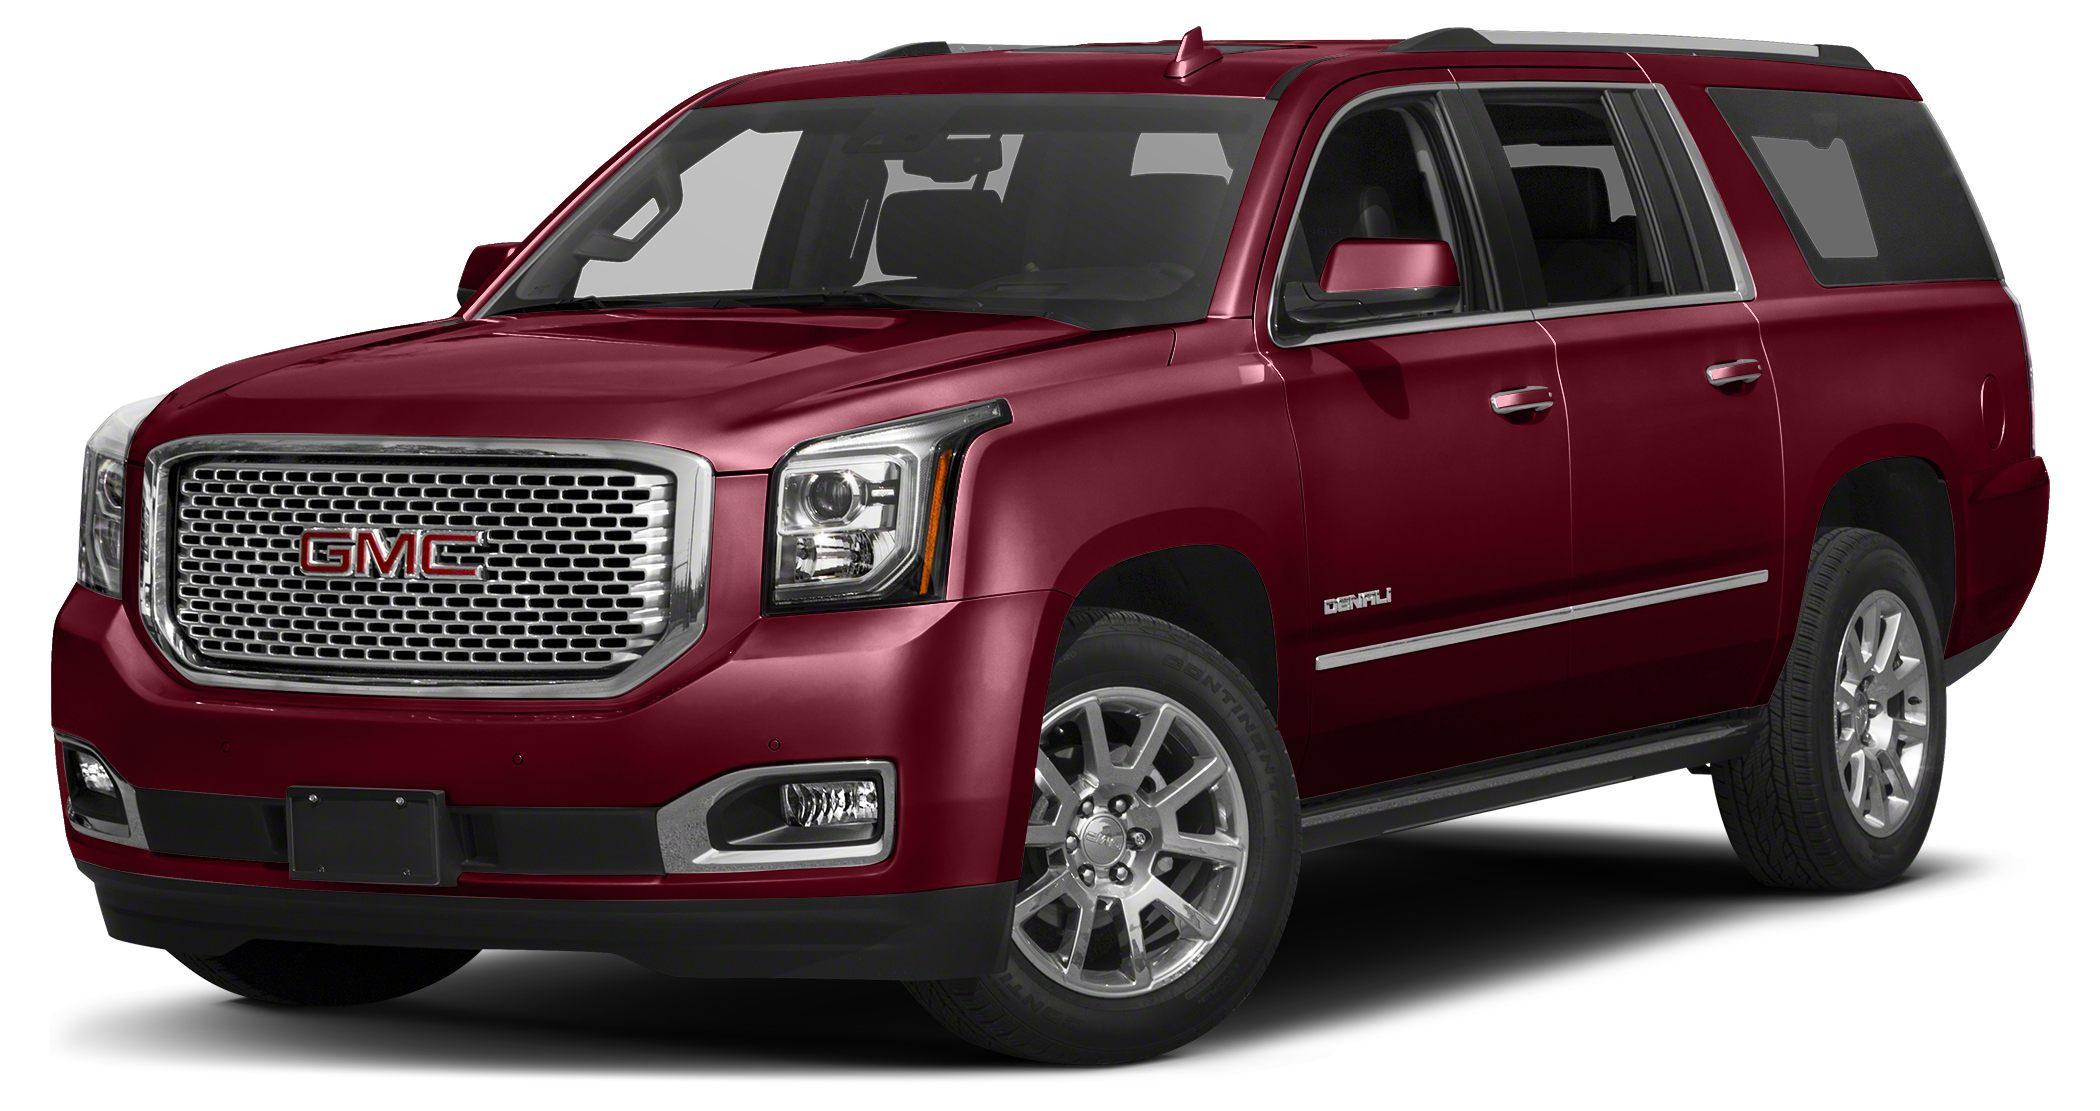 2016 GMC Yukon XL Denali OPTION PACKAGES OPEN ROAD PACKAGE includes additional 9 months of